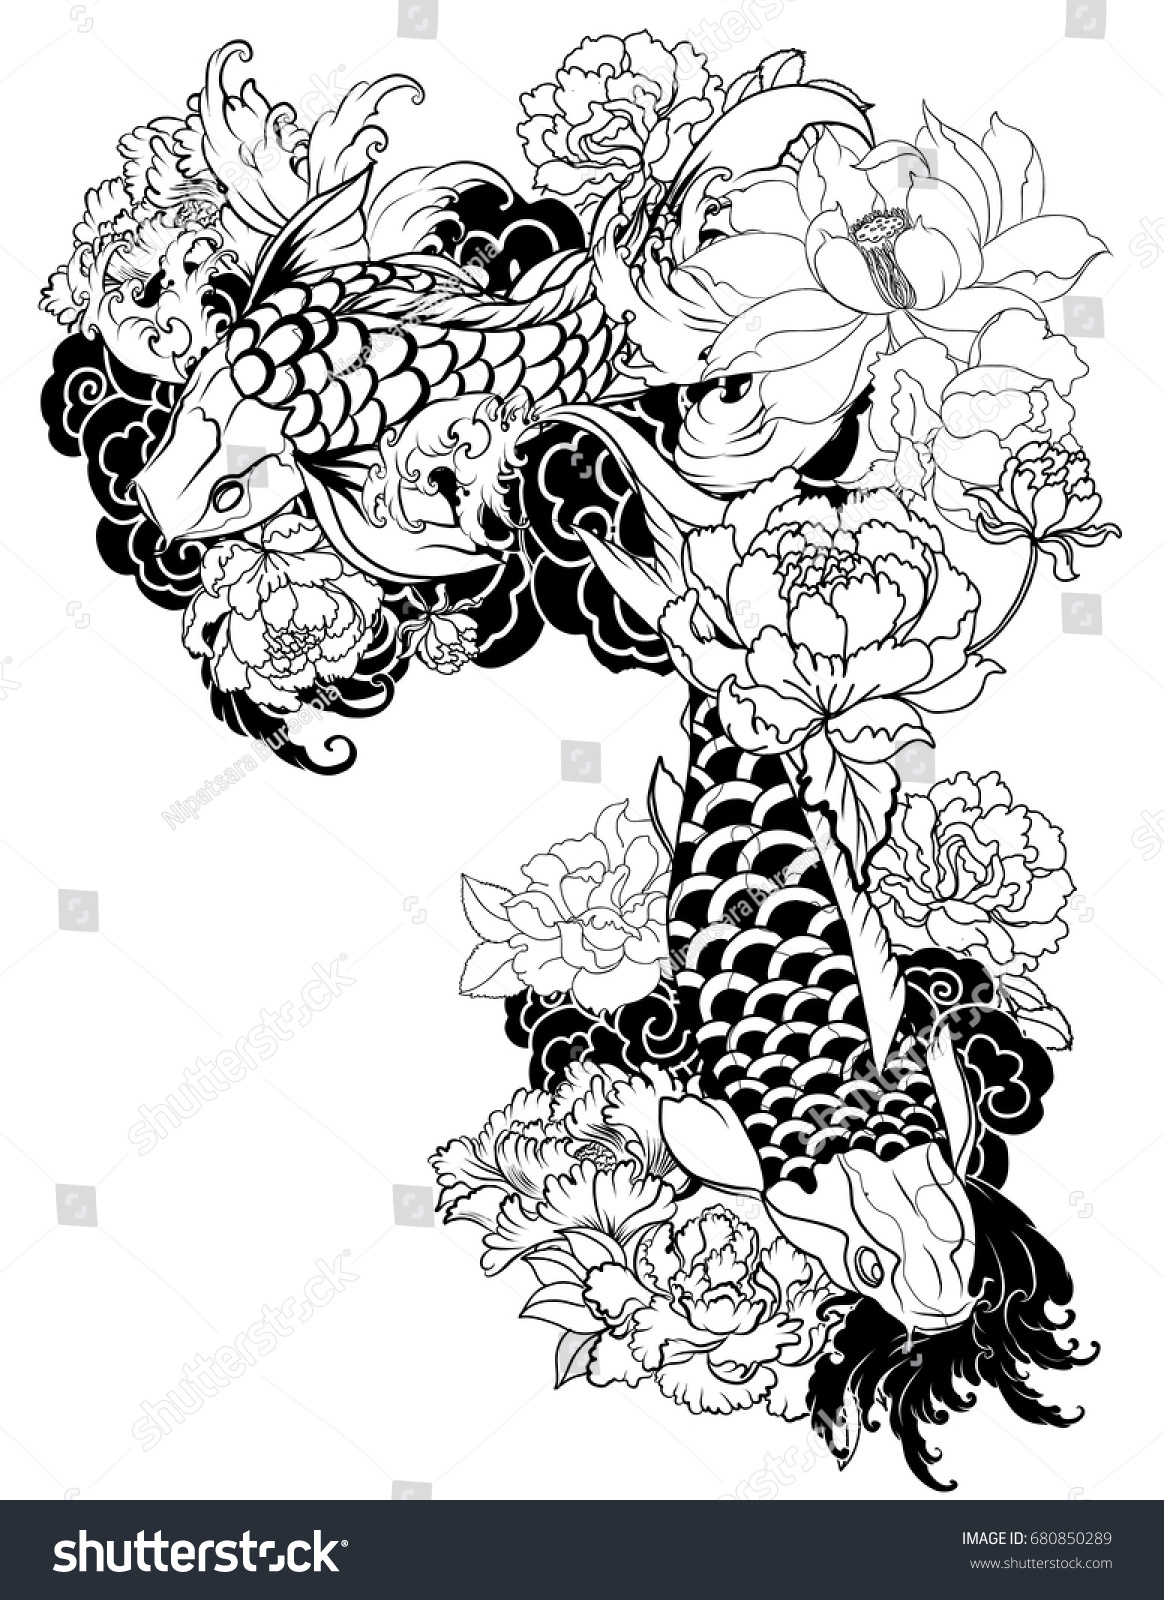 Hand drawn koi carp fish with peony flowers lotuses and water splashes traditional